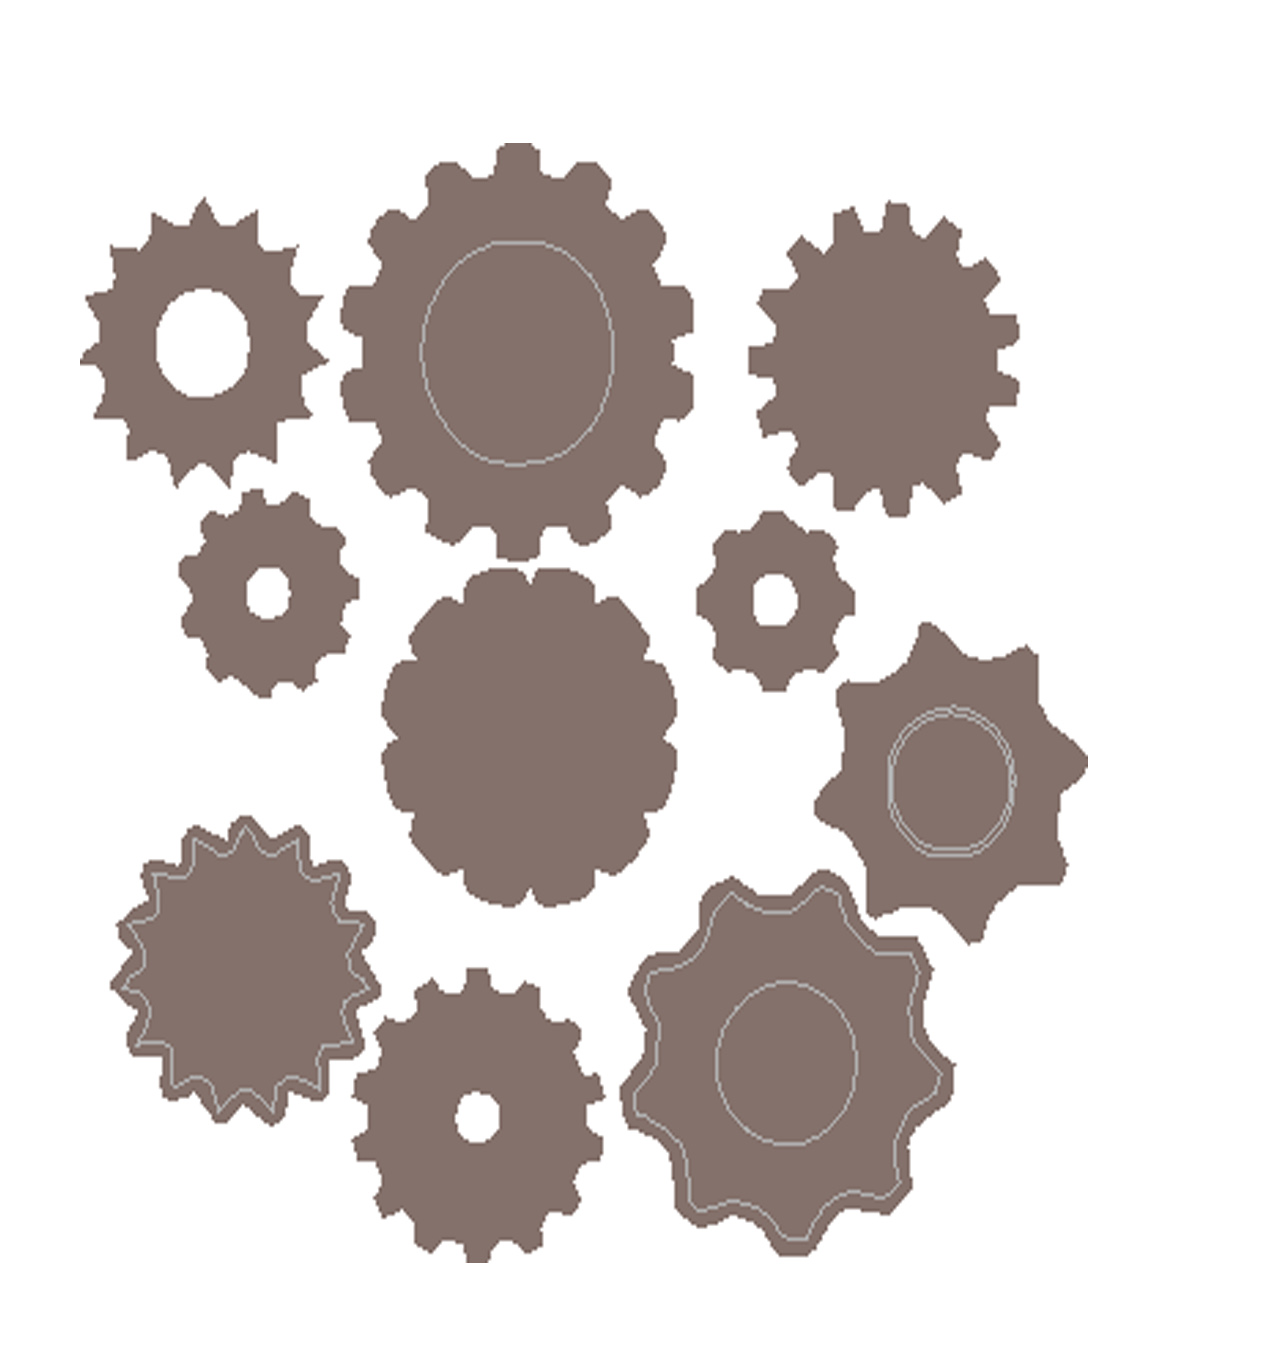 COGS MULTI PACK, MIN BUY 3